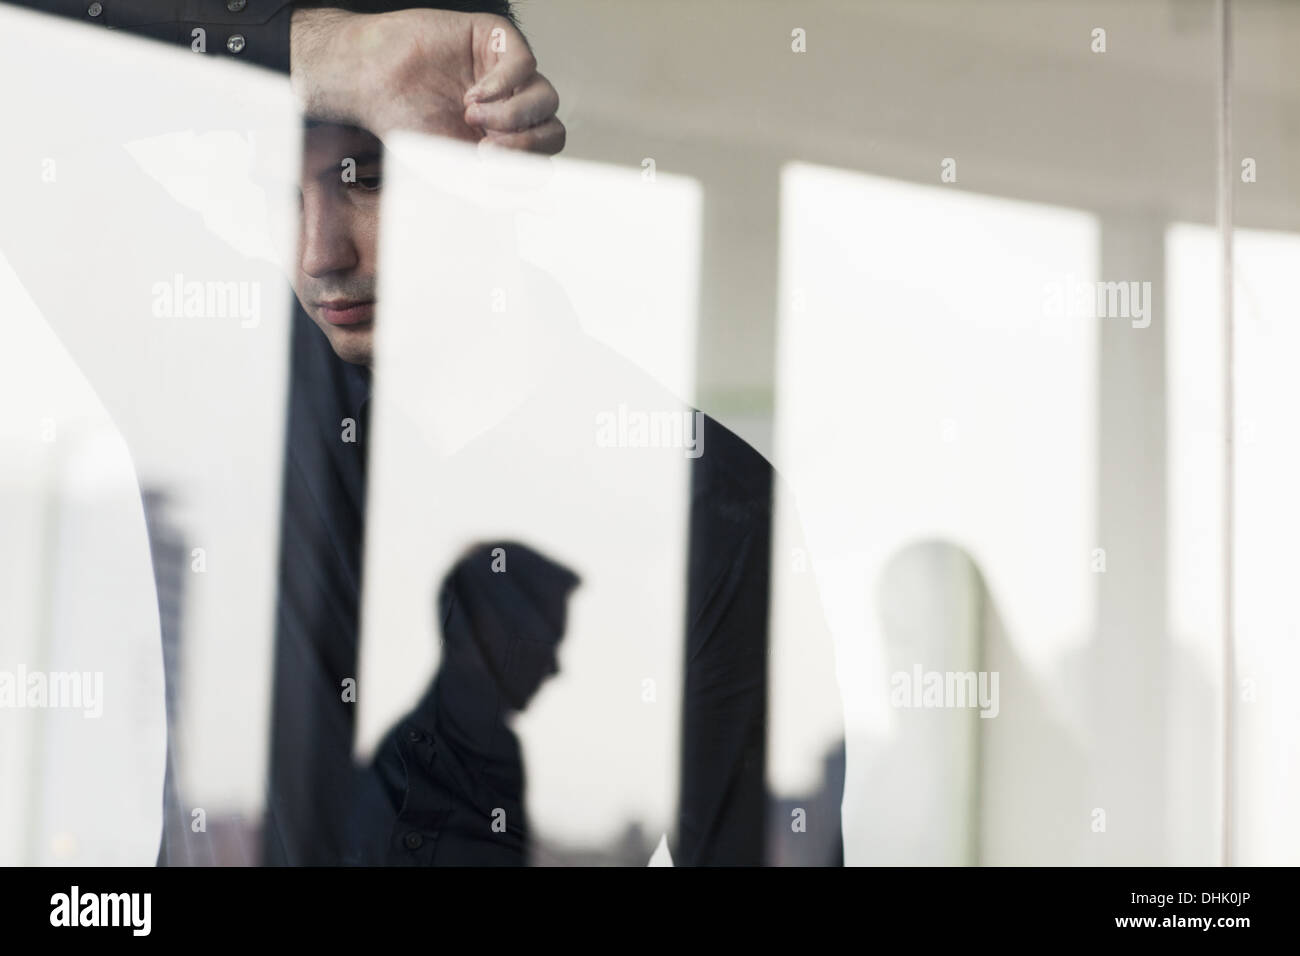 Overworked businessman with arm raised leaning on the other side of a glass wall - Stock Image